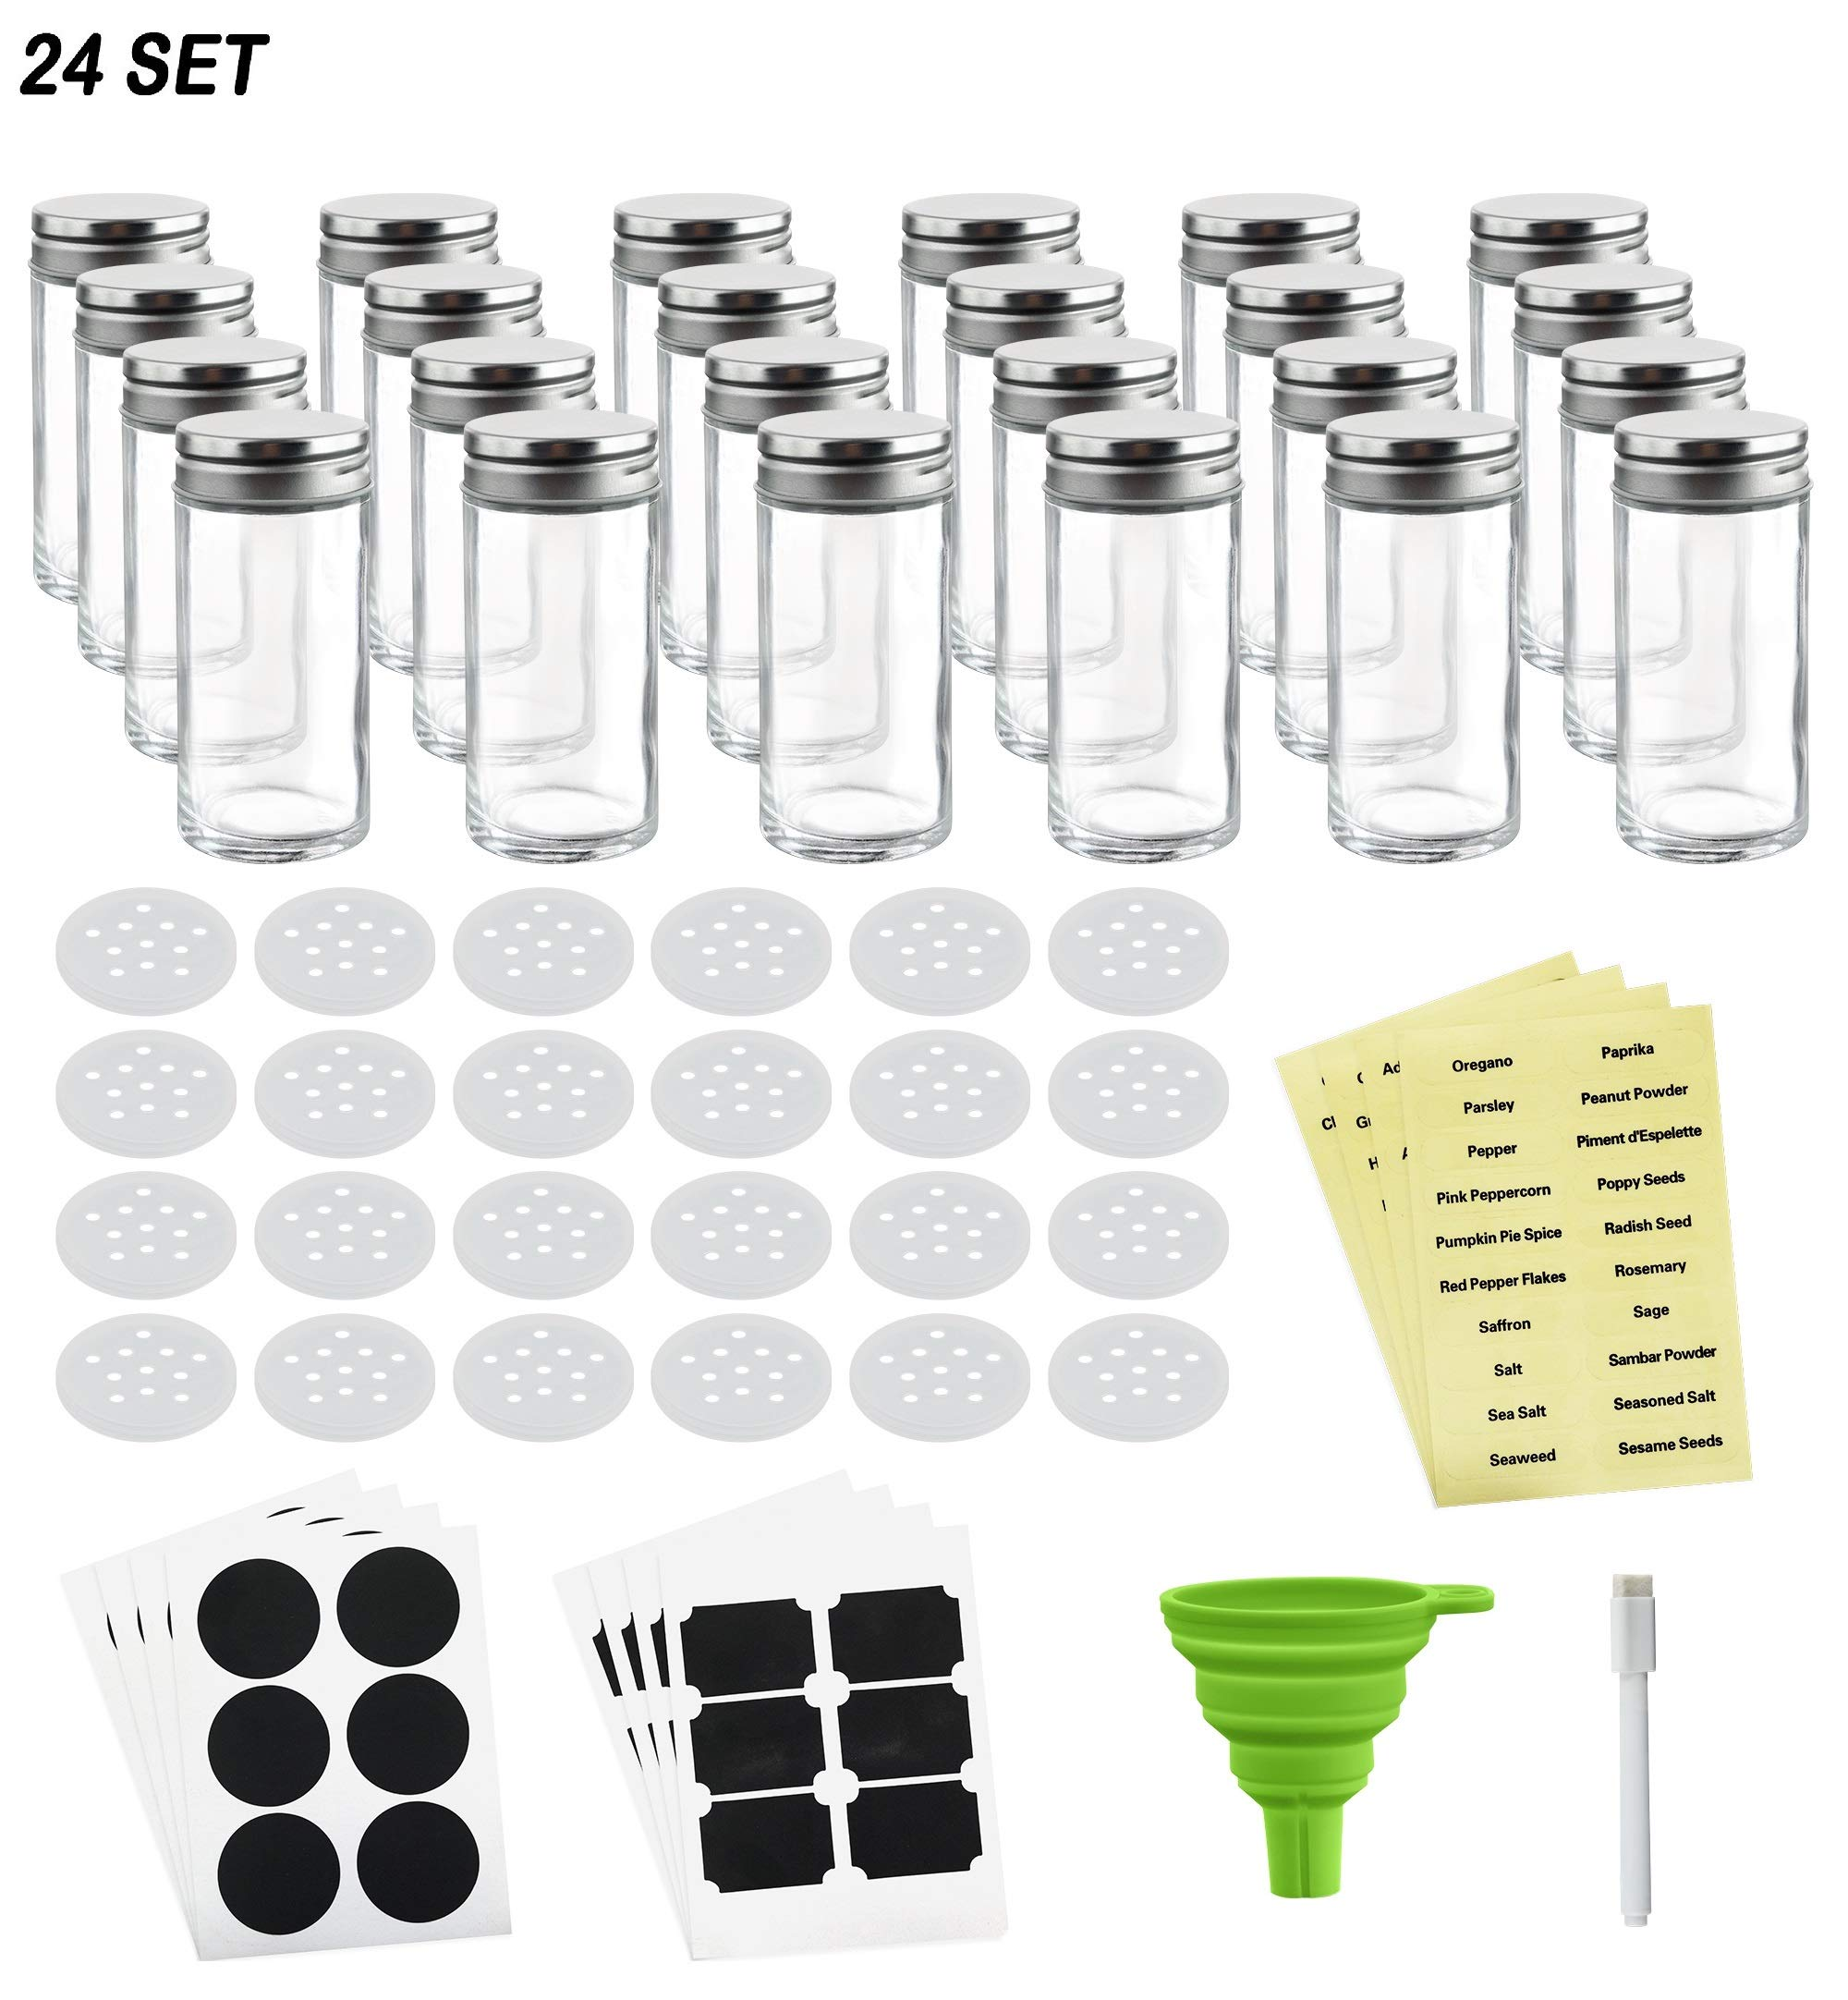 Nellam French Round Glass Spice Jars – Set of 24 with Shaker Lids and Chalkboard Sticker Labels, Small 4oz Bottles - Stackable Herbs and Spices Containers - Decorative Organizers in Silver